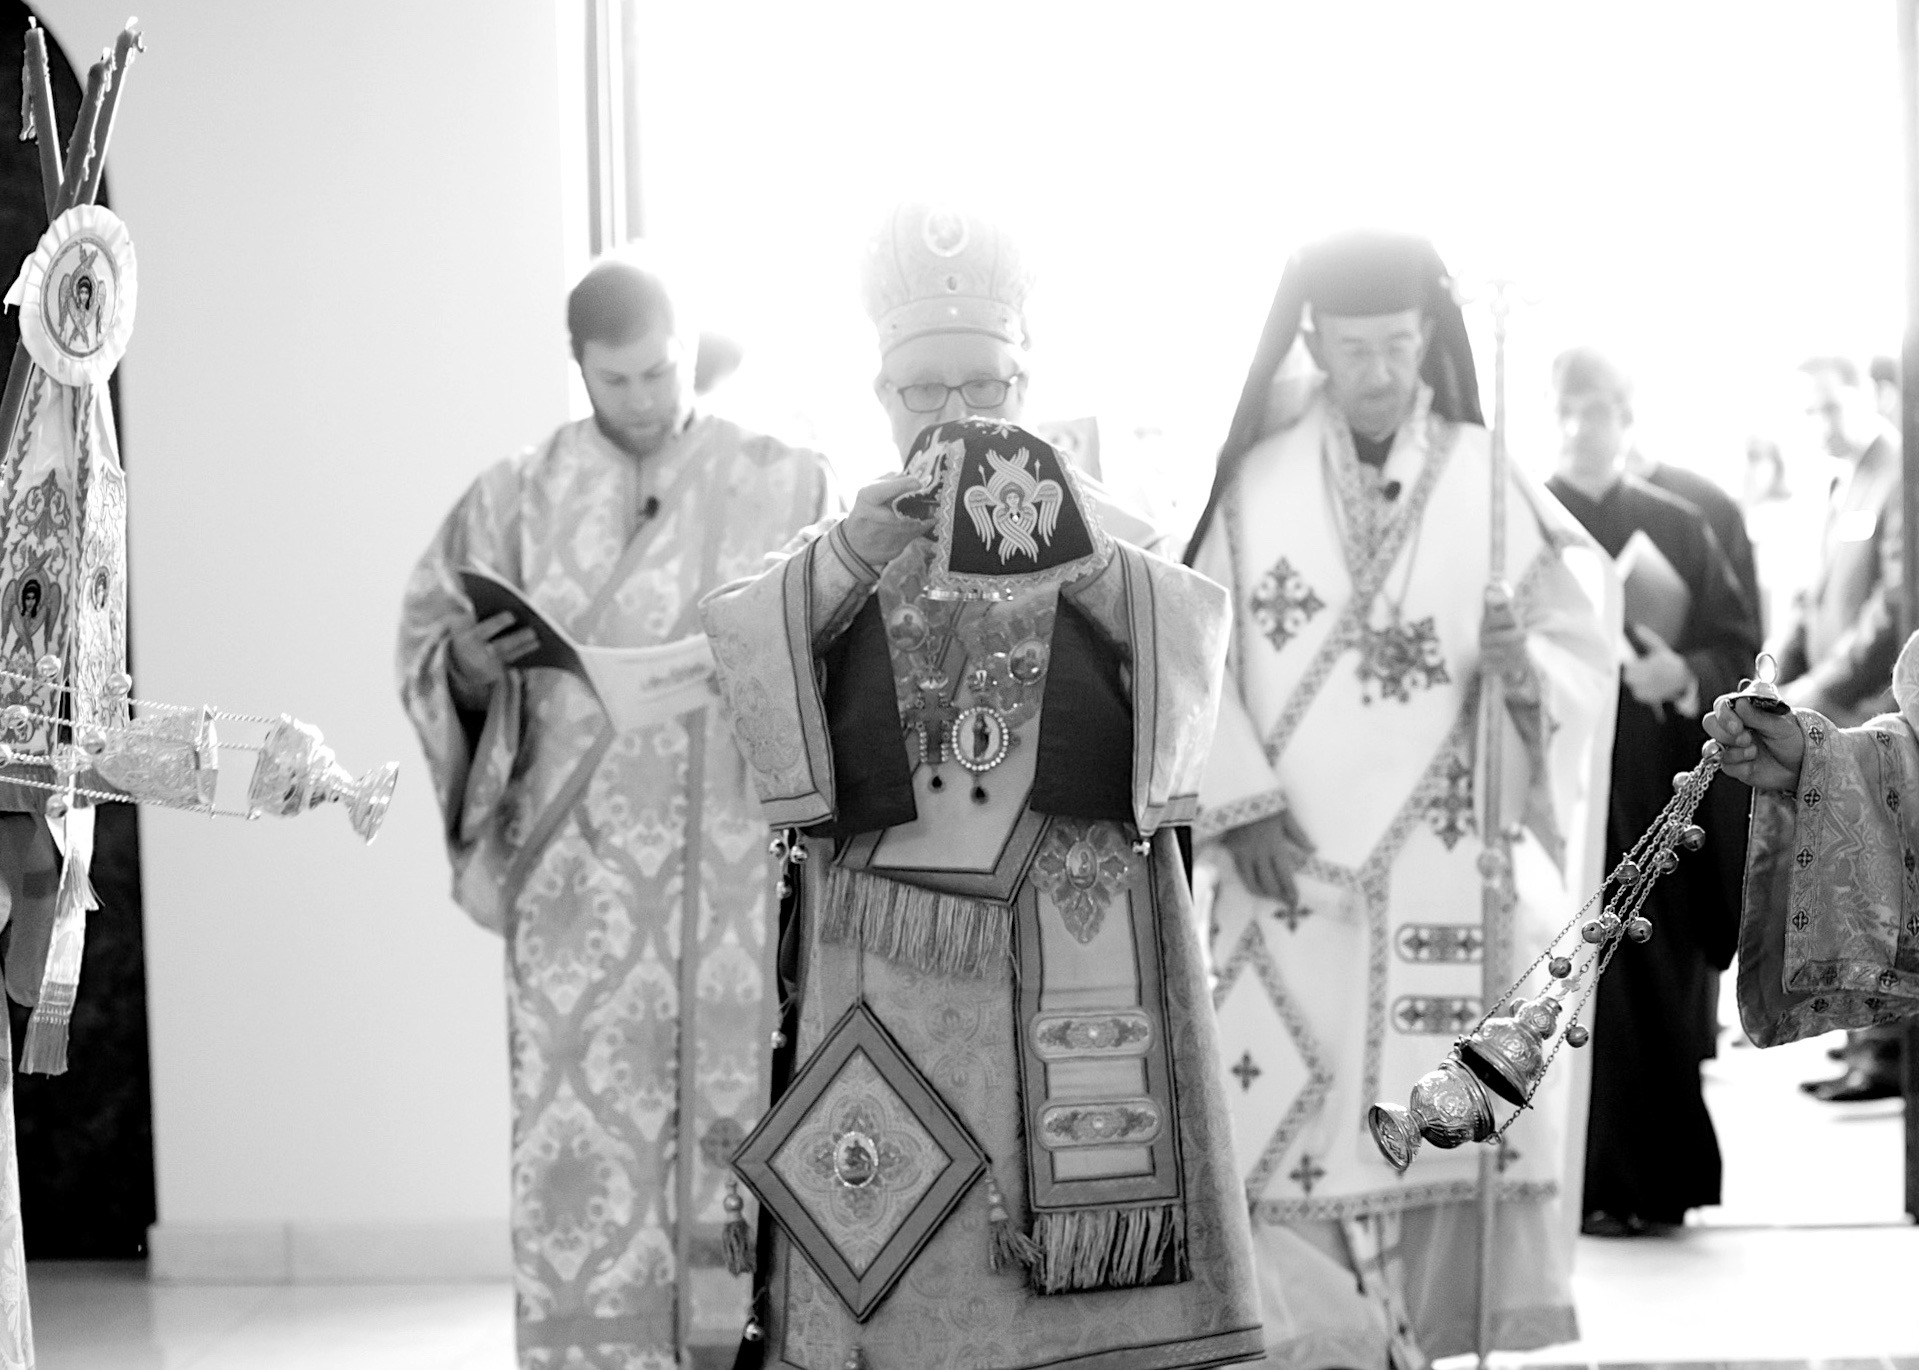 The Orthodox Church is the first Church of Christ